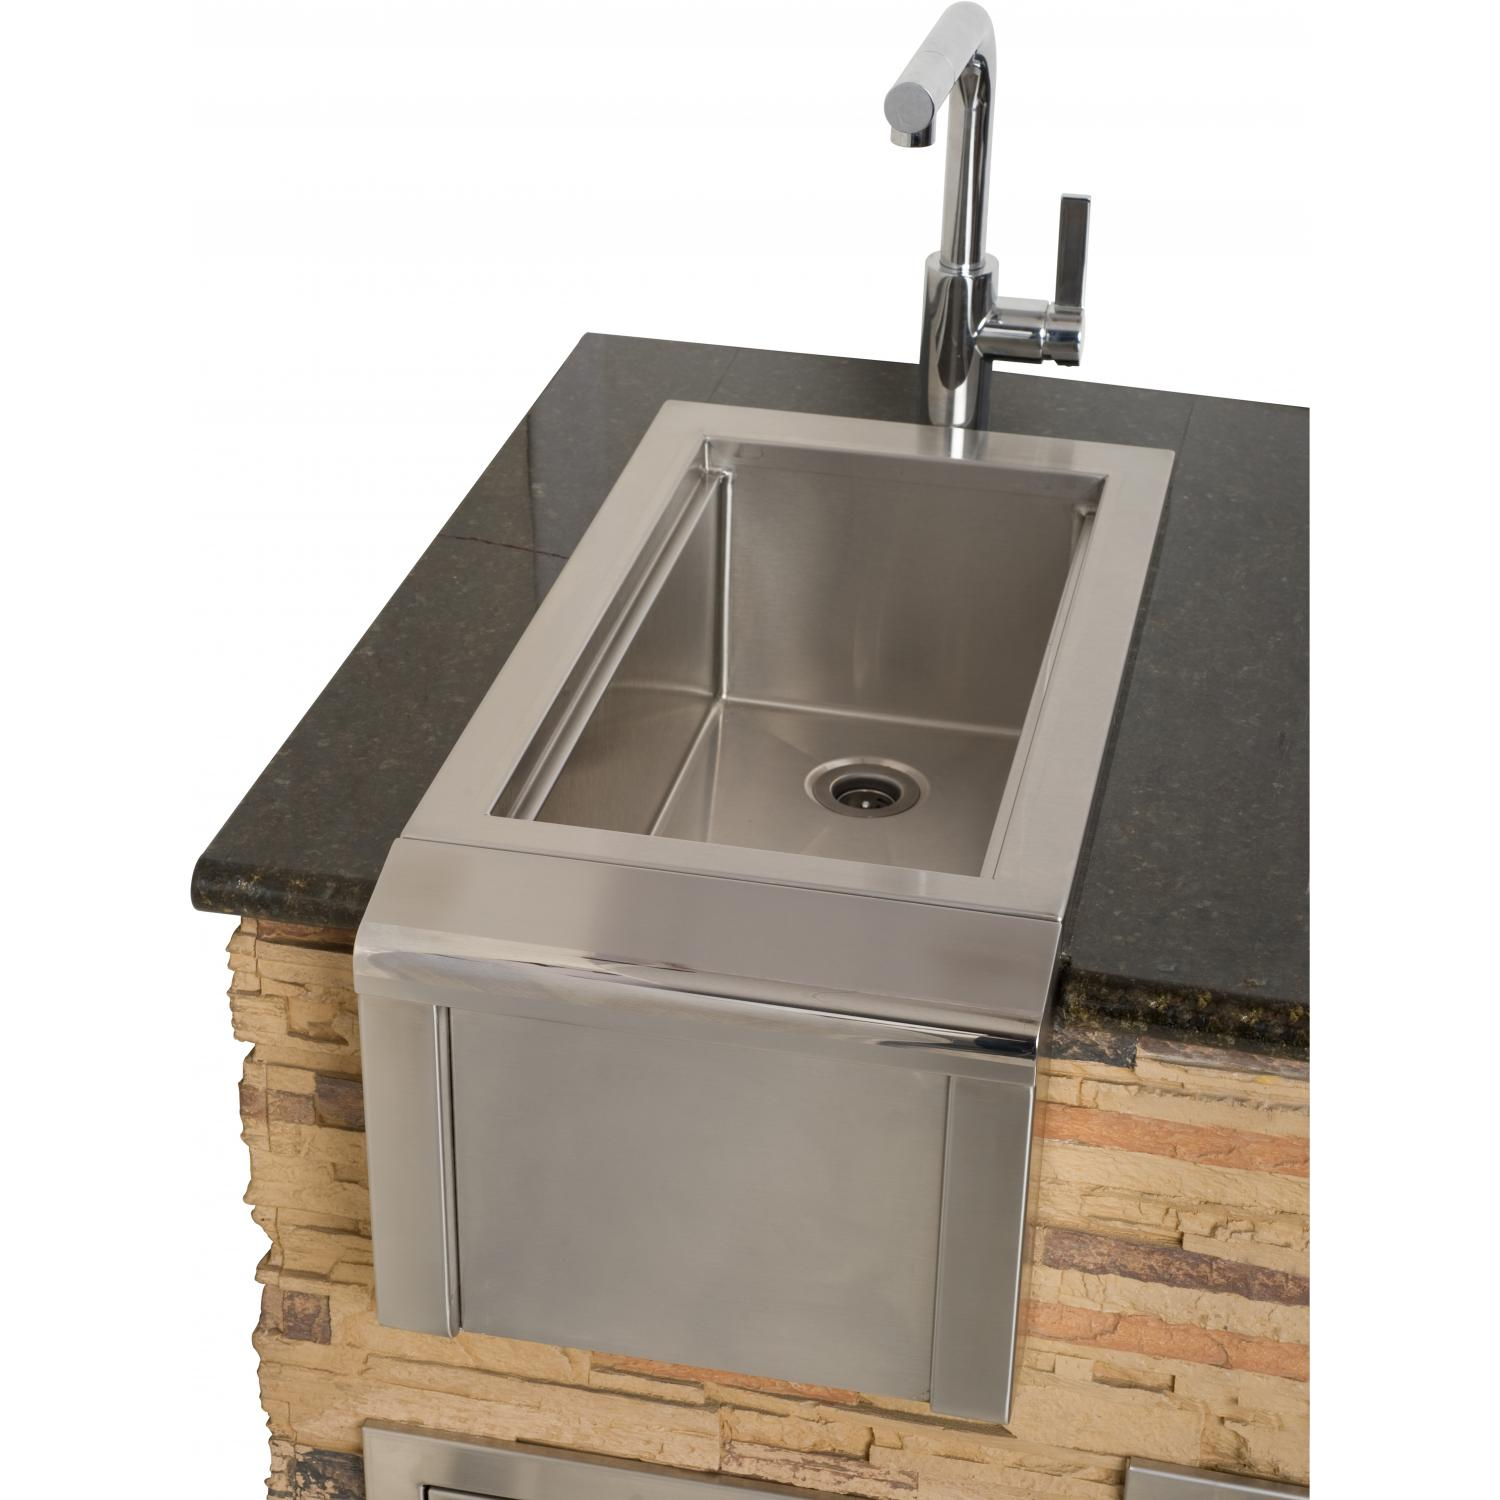 Picture of Alfresco 14-Inch Versa Bartender & Sink System